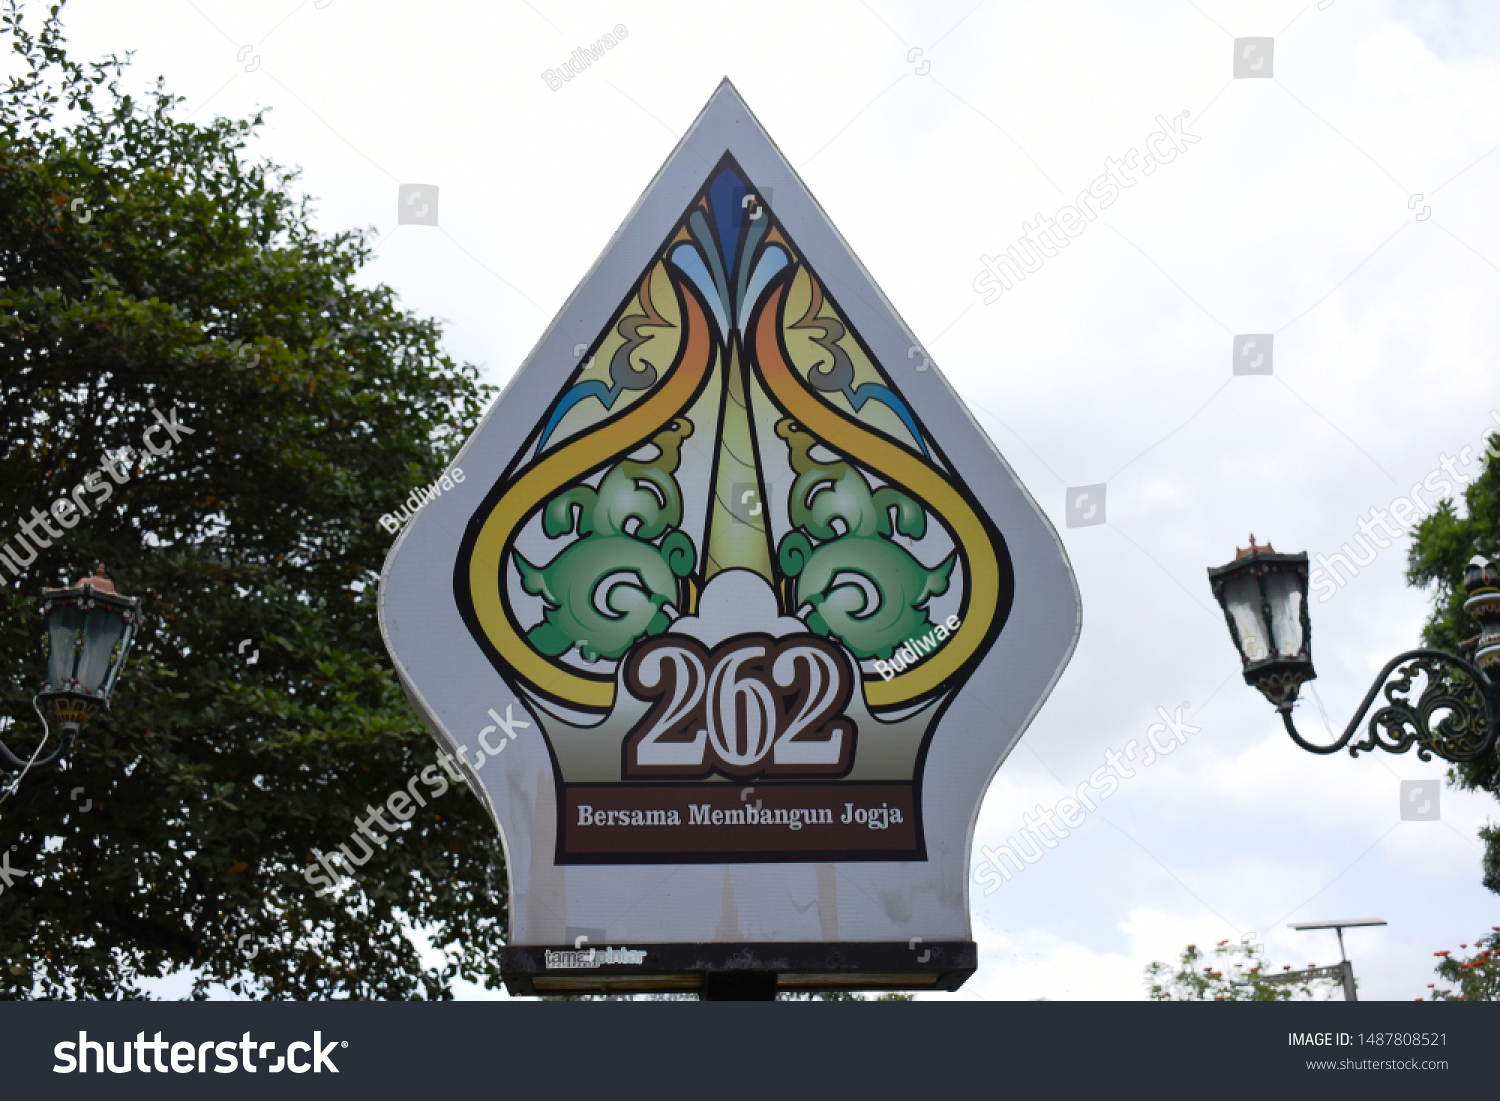 yogyakarta august 25 2019 inspired banner stock photo edit now 1487808521 shutterstock